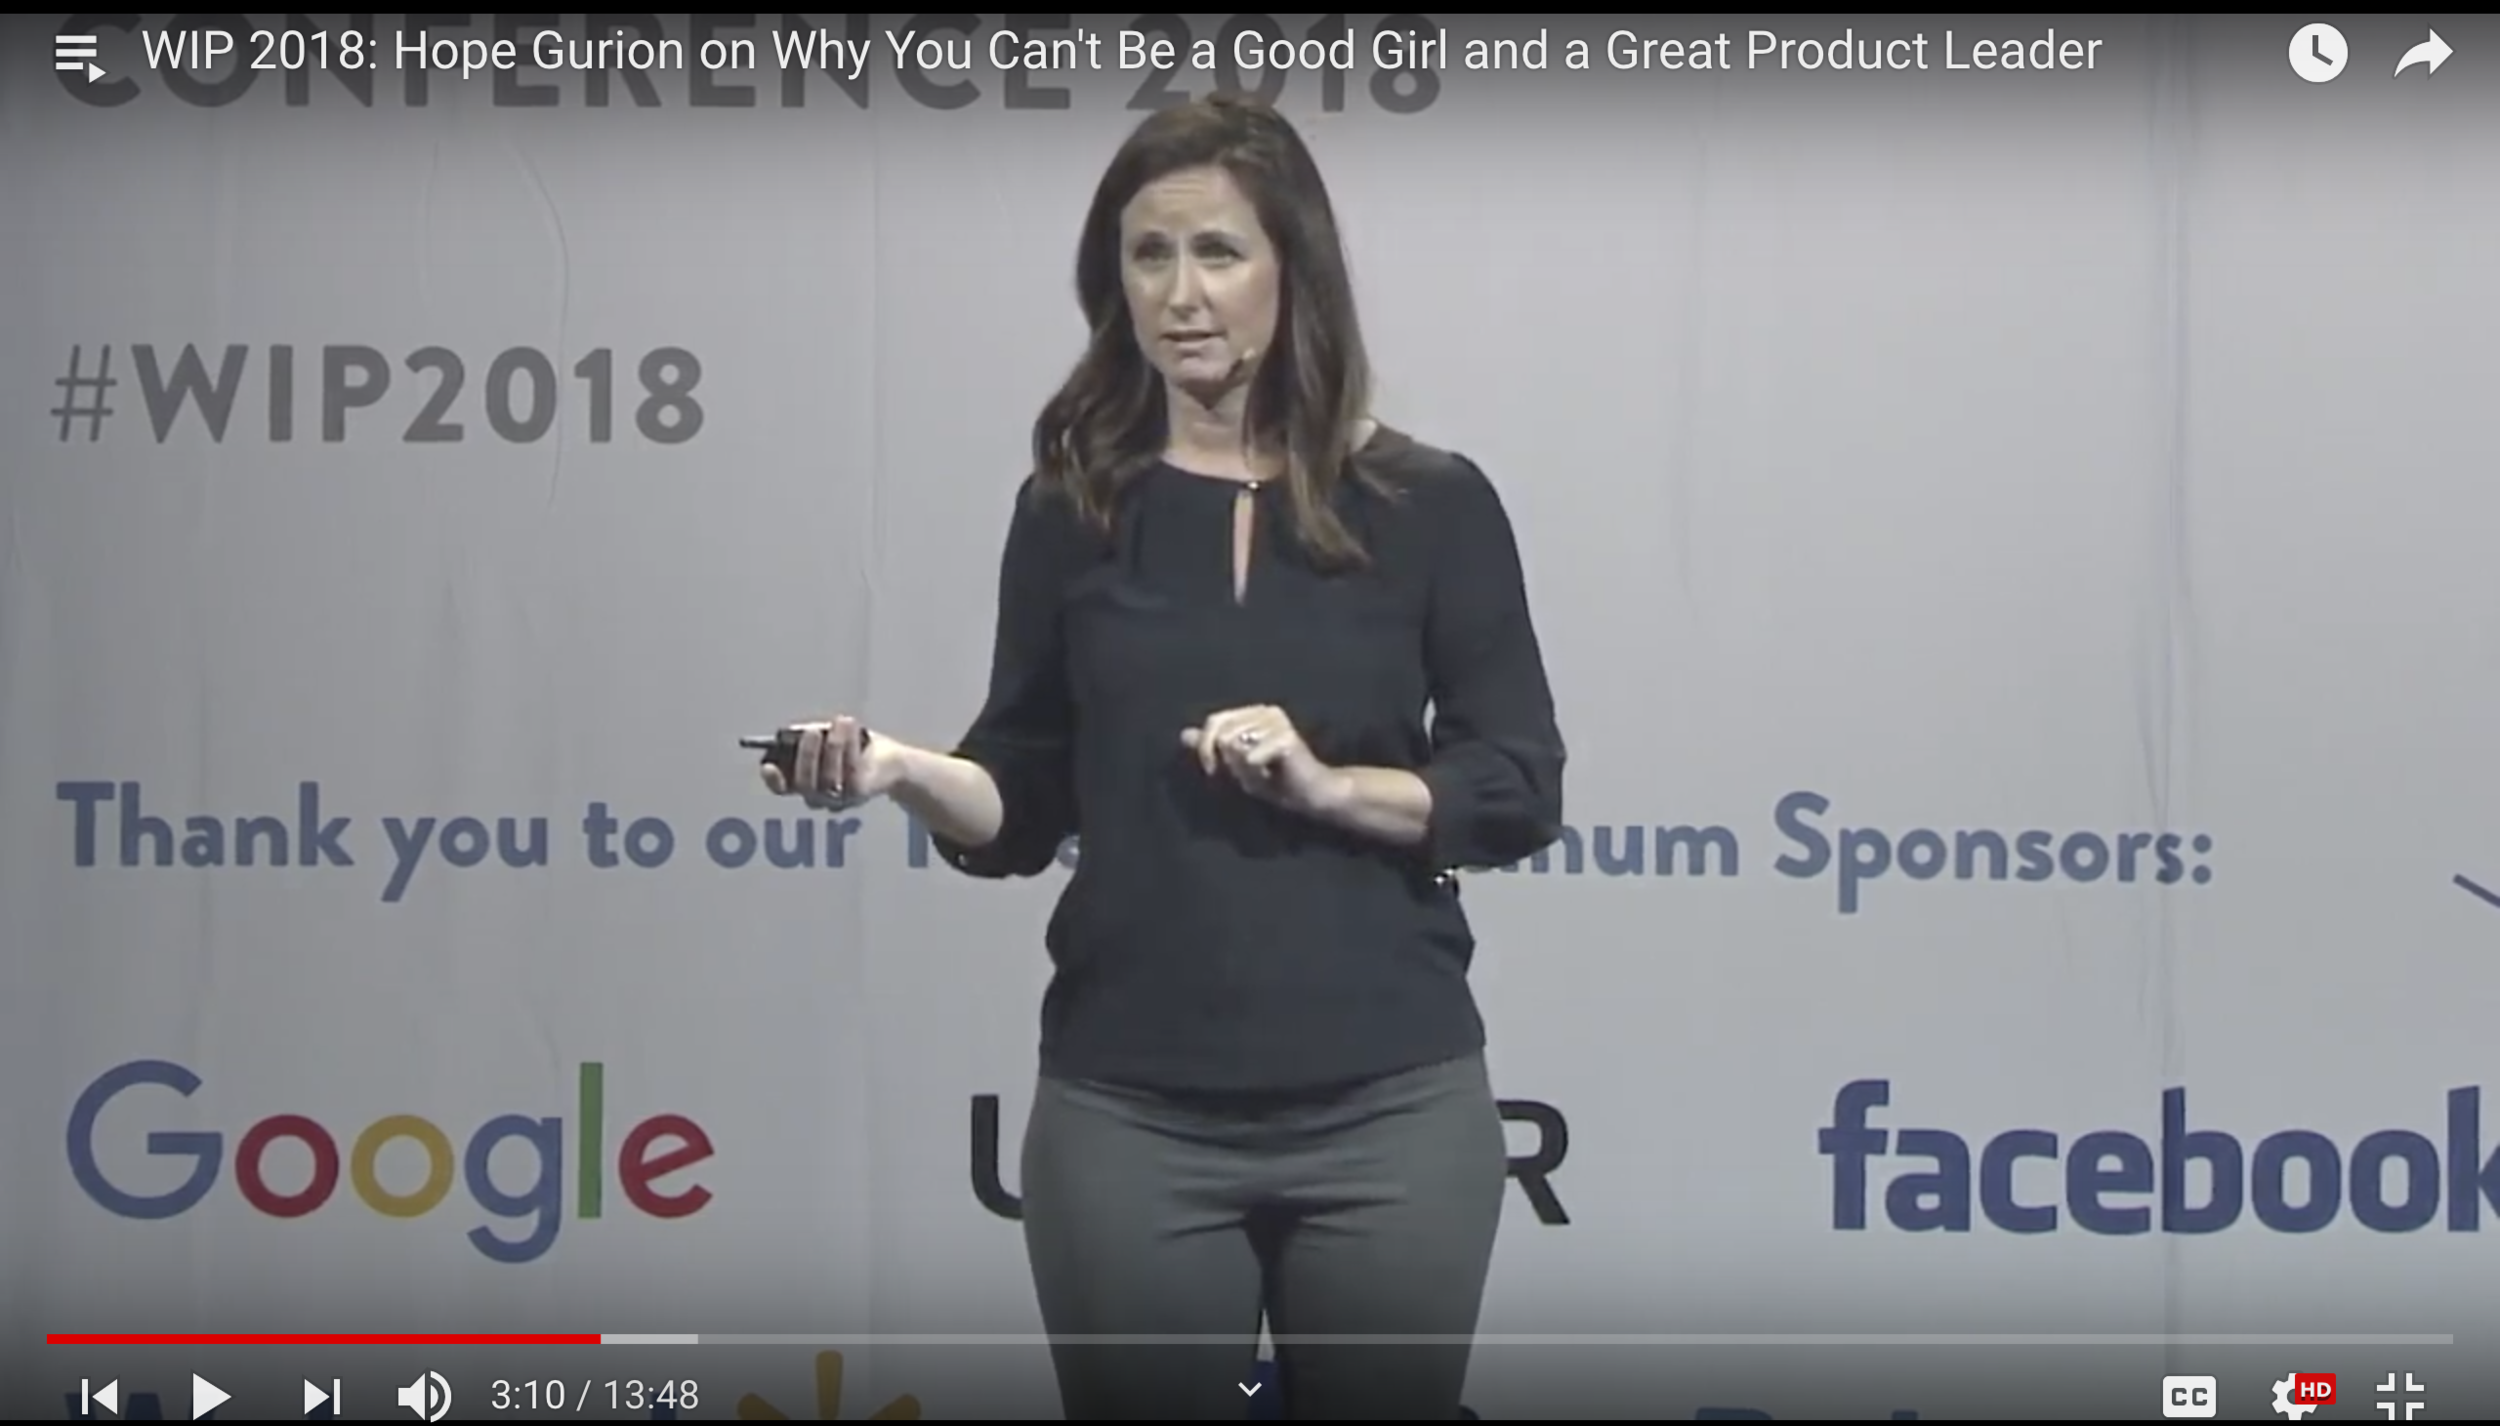 WHY I CAN'T BE A GOOD GIRL AND GOOD PRODUCT LEADER